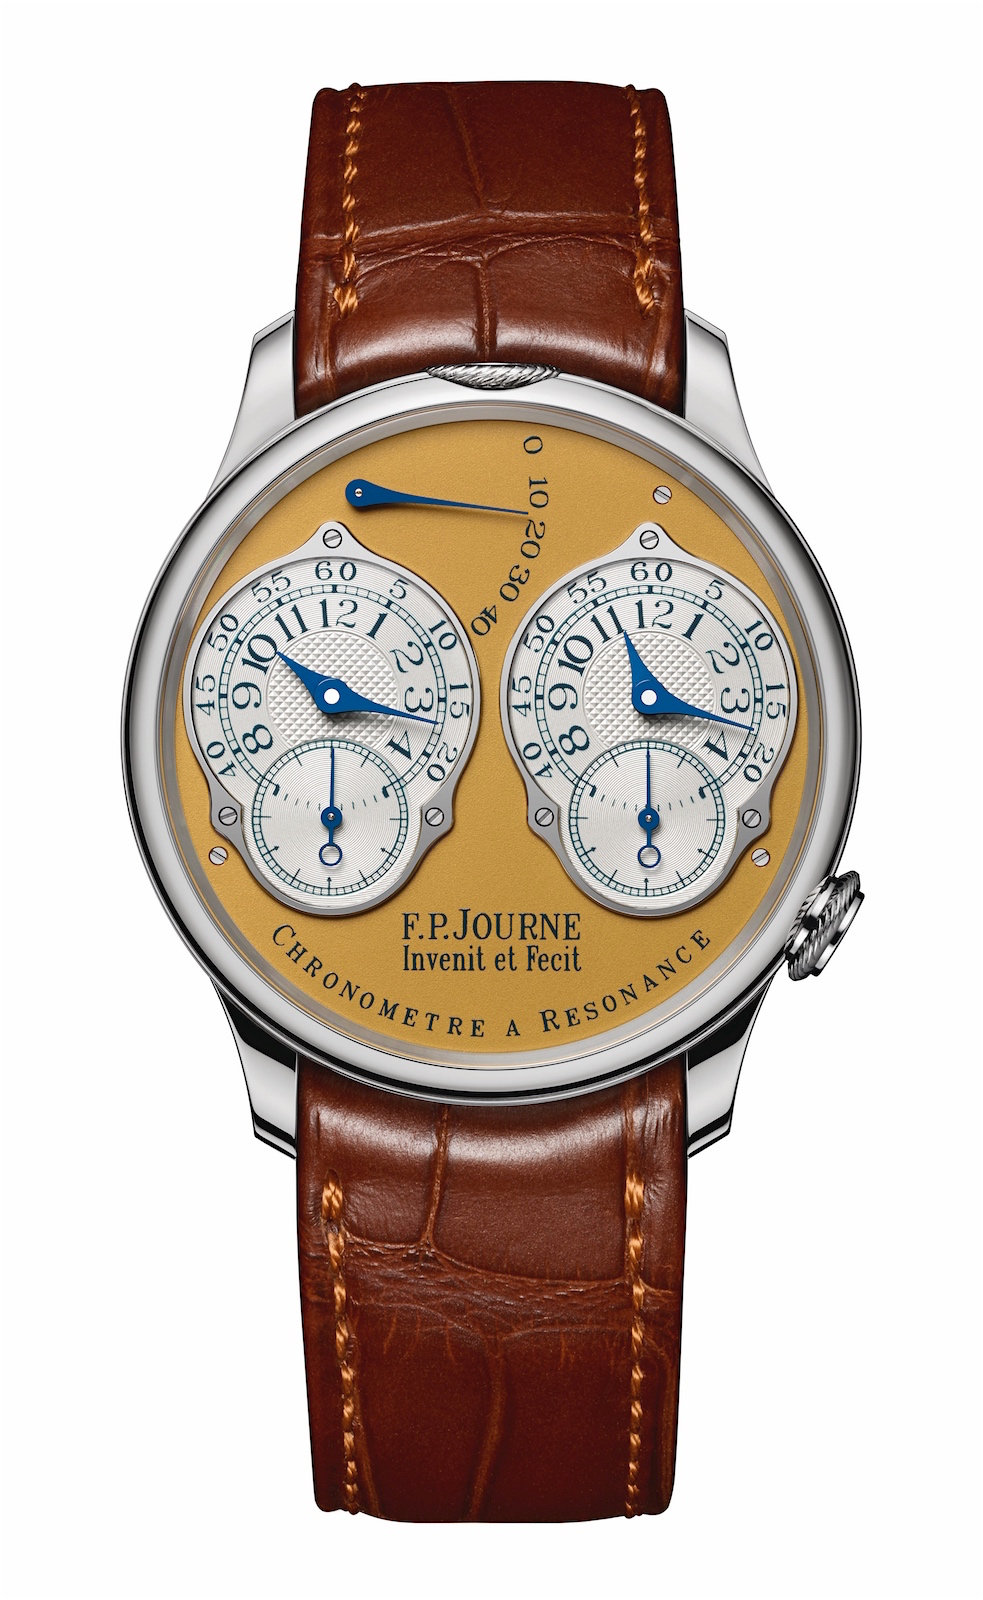 F.P. Journe Chronometre a Resonance - coffret